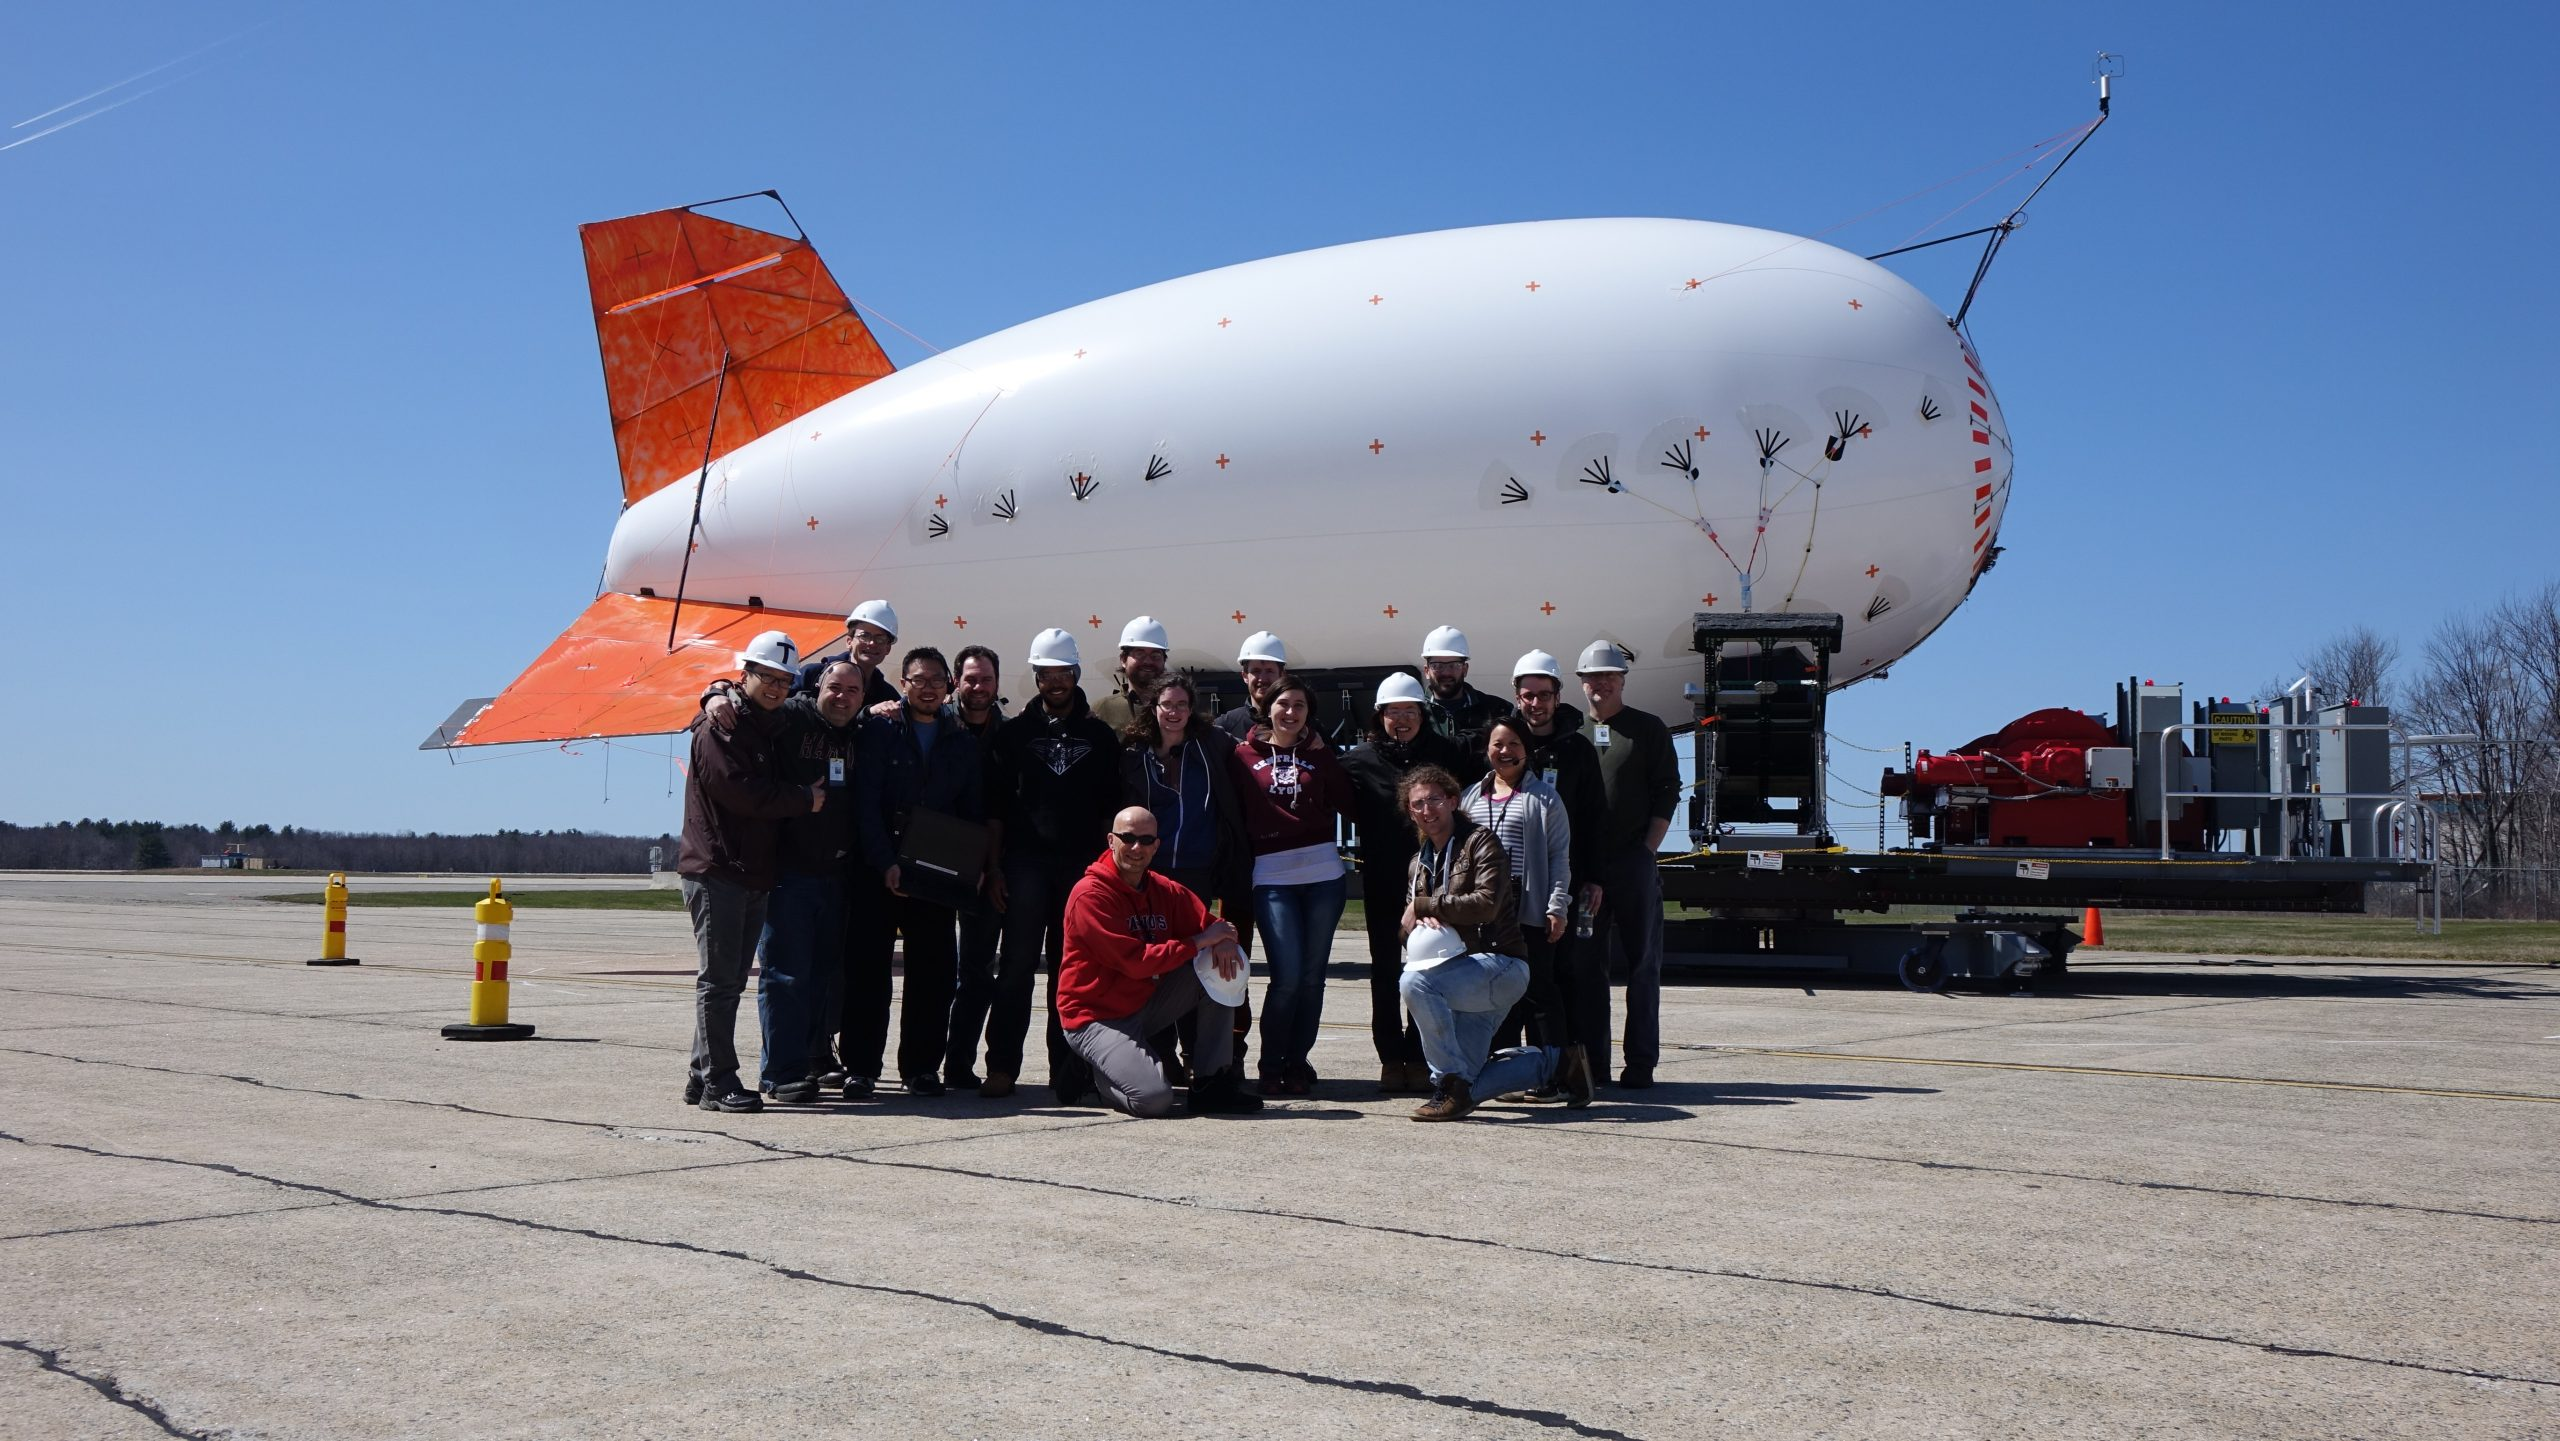 The Altaeros team standing in front of a SuperTower prototype